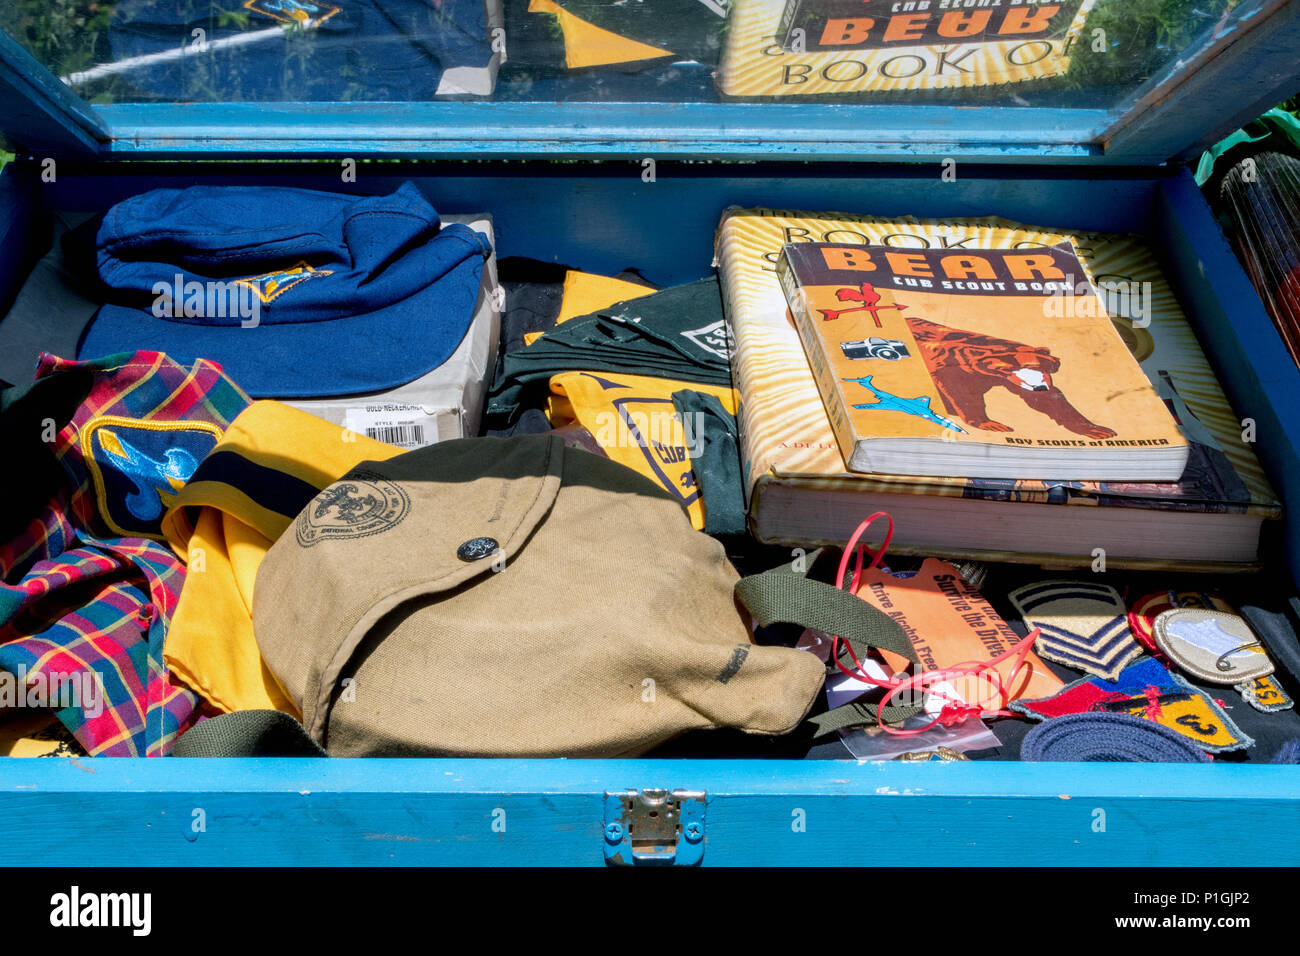 a box of rare old boy scout items are a treasure trove for a collector. scouting uniform, badges, books and caps, beautifully preserved - Stock Image